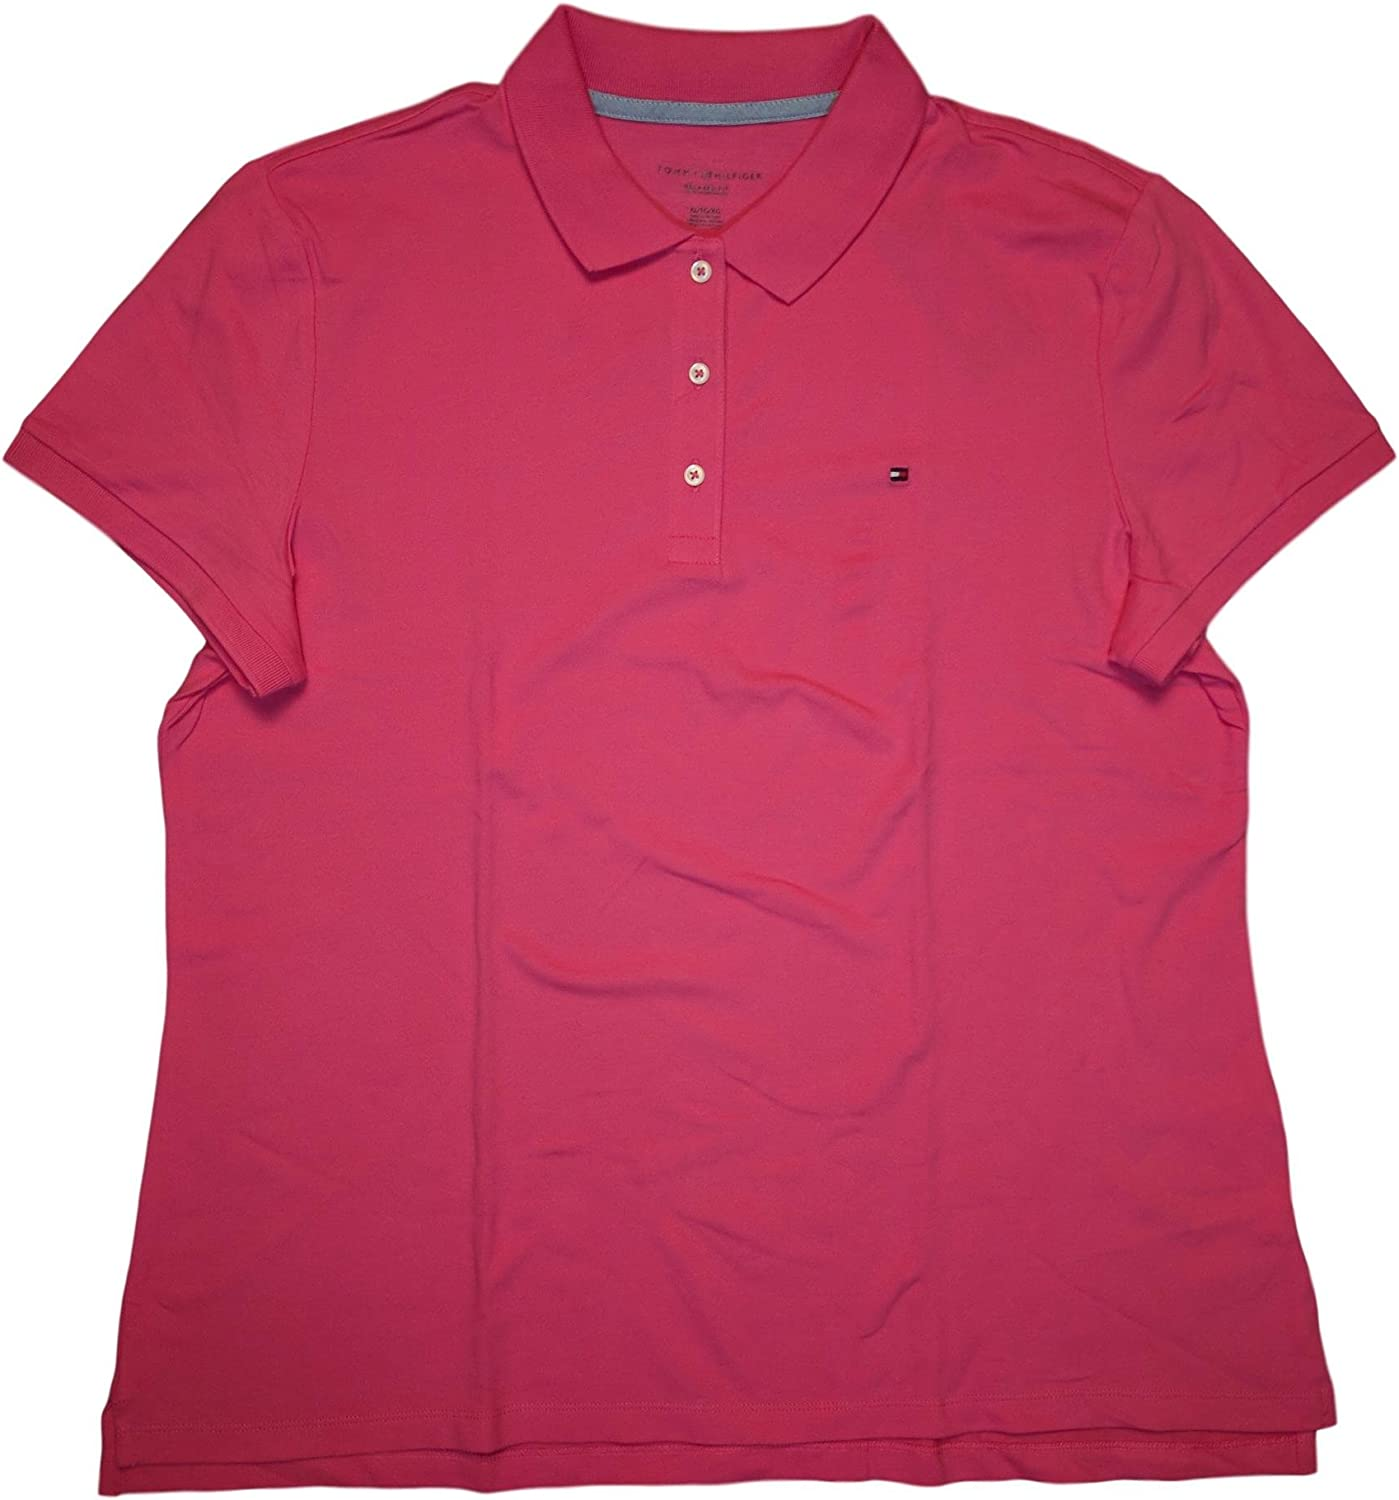 Tommy Hilfiger Women's Relaxed Fit Polo Shirt